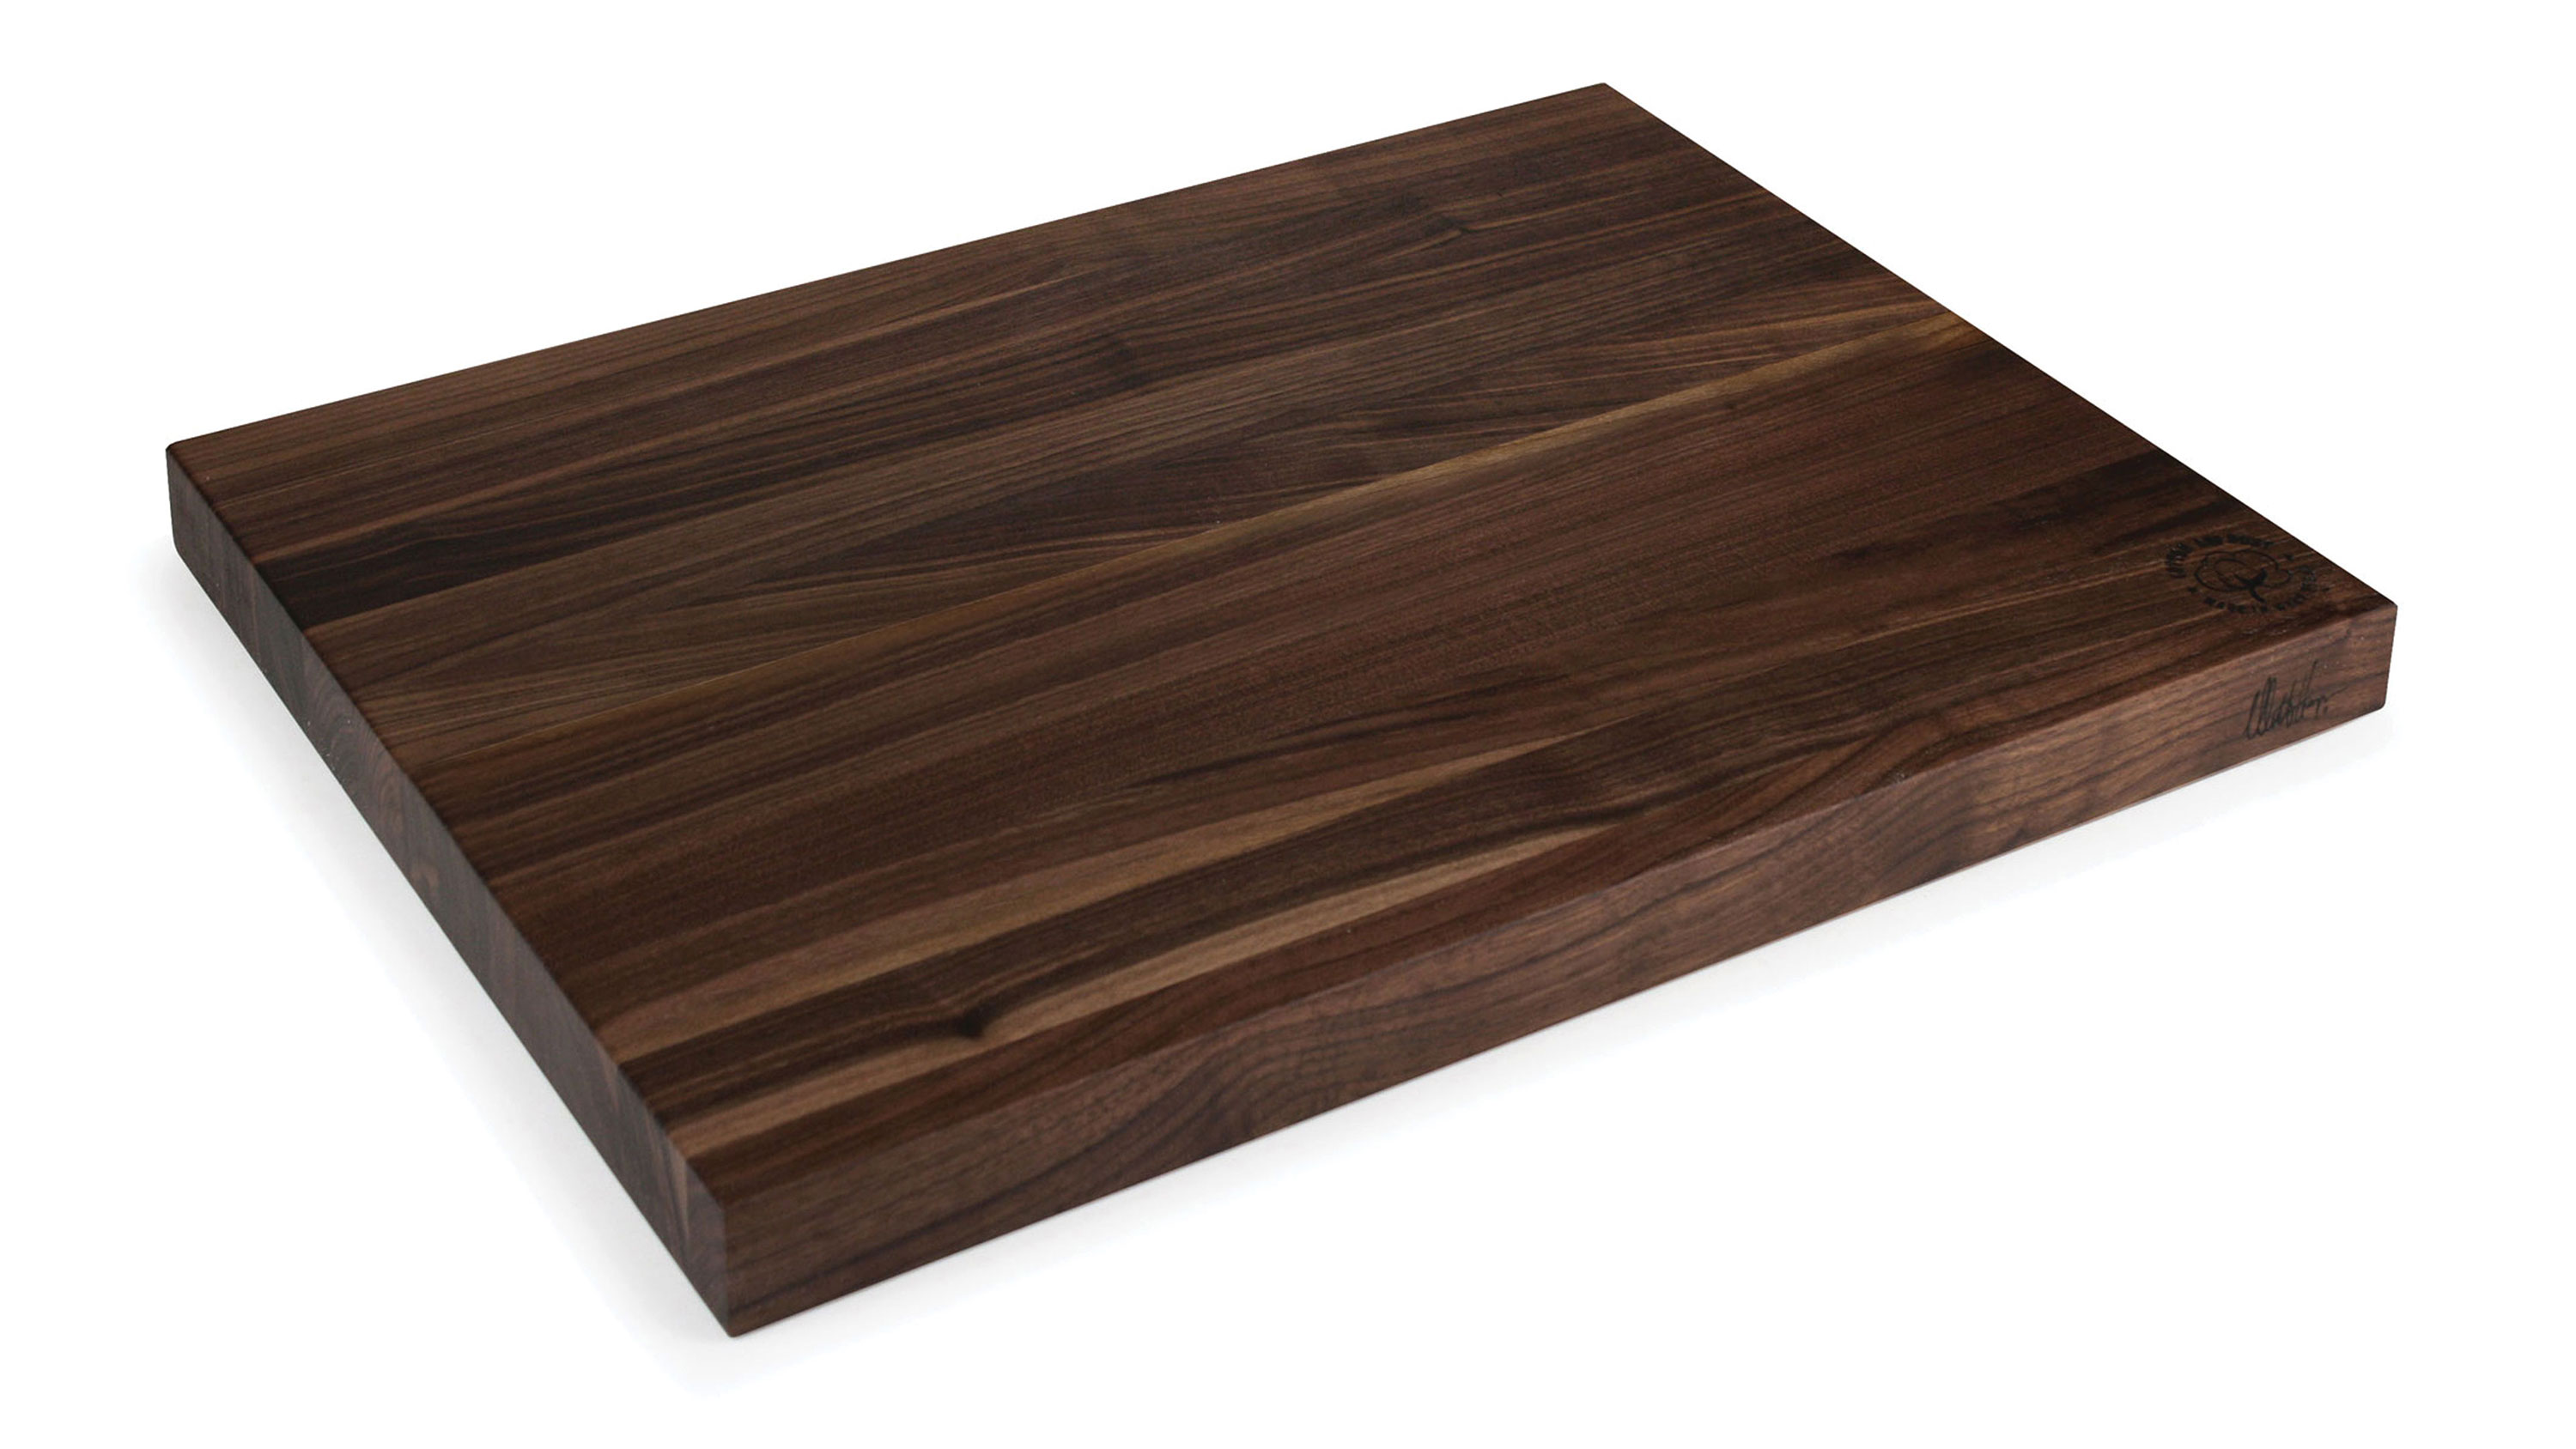 Cotton And Dust Walnut Cutting Board Severyn 24x18 Inch